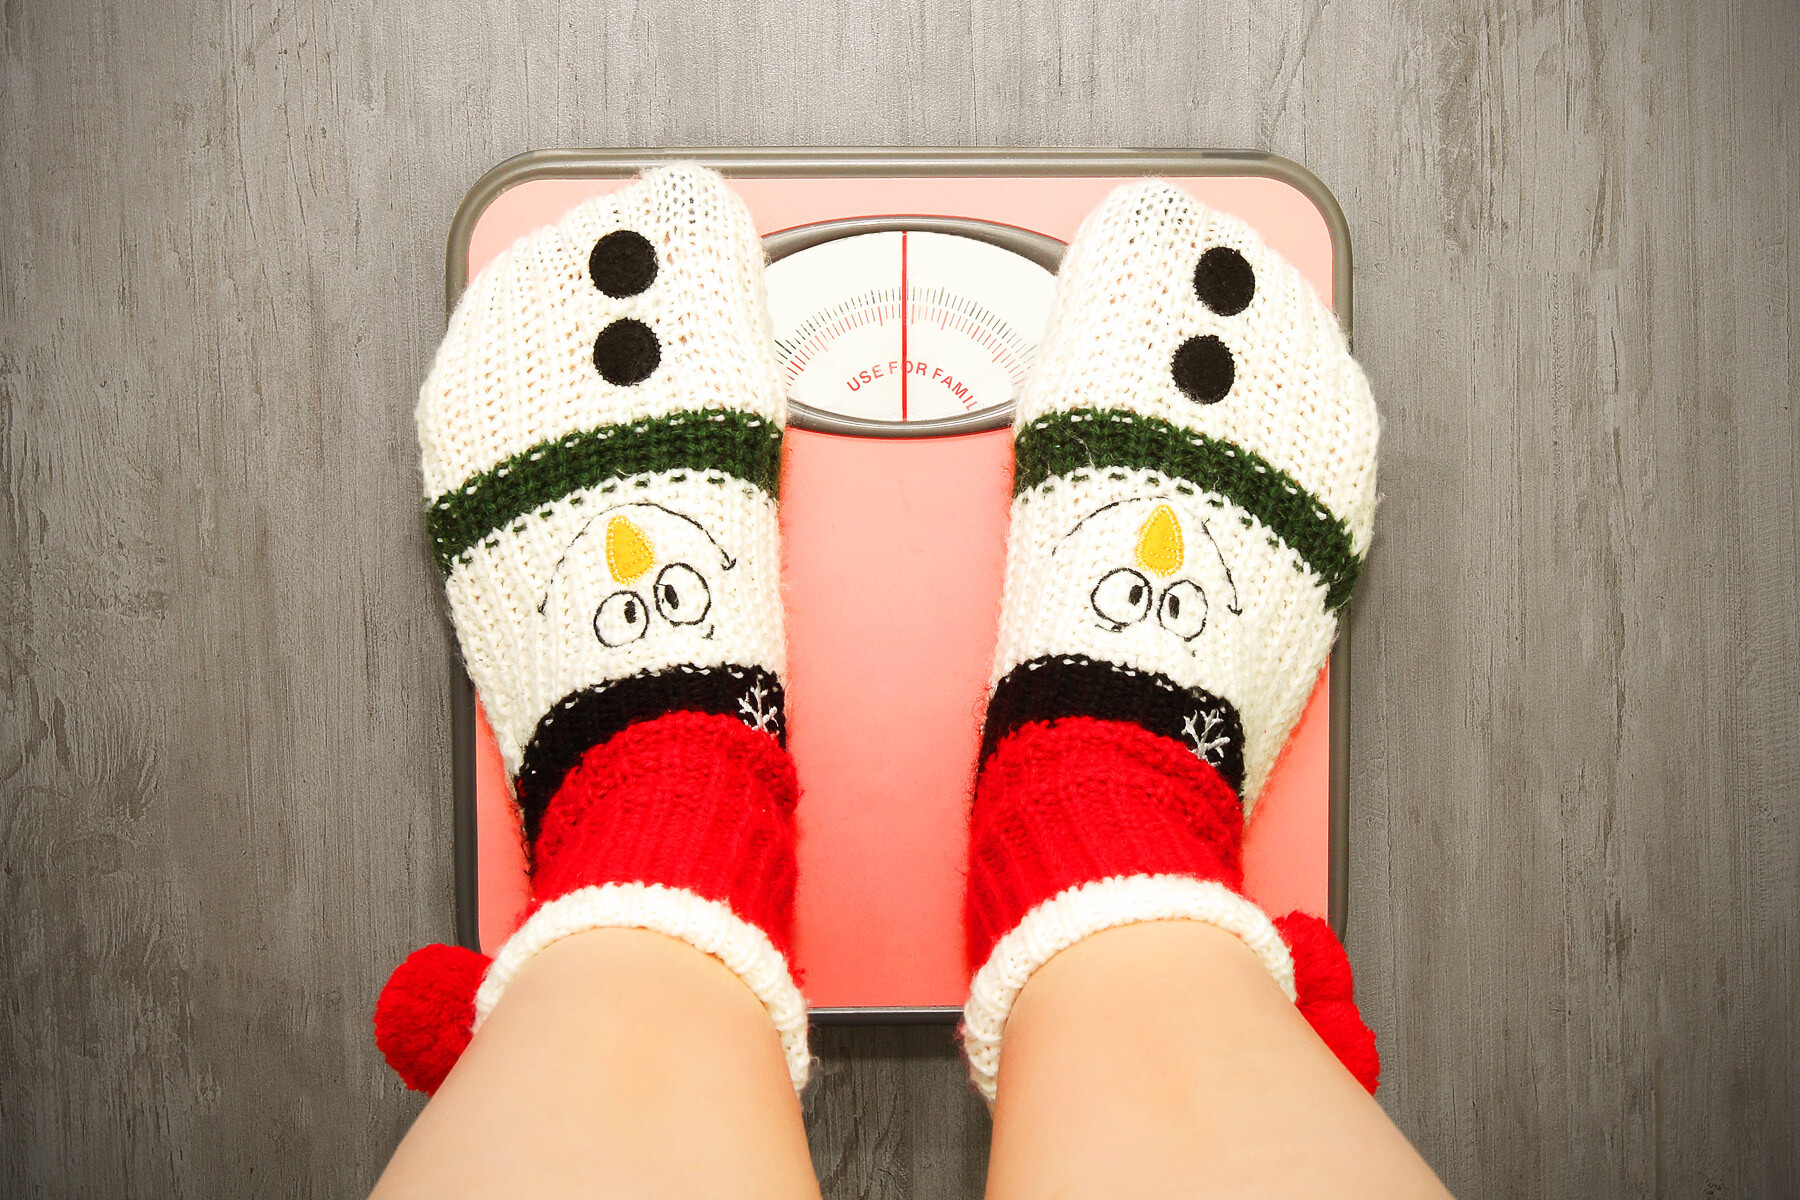 Worried Your Weight Will Weigh Down Your Holidays?